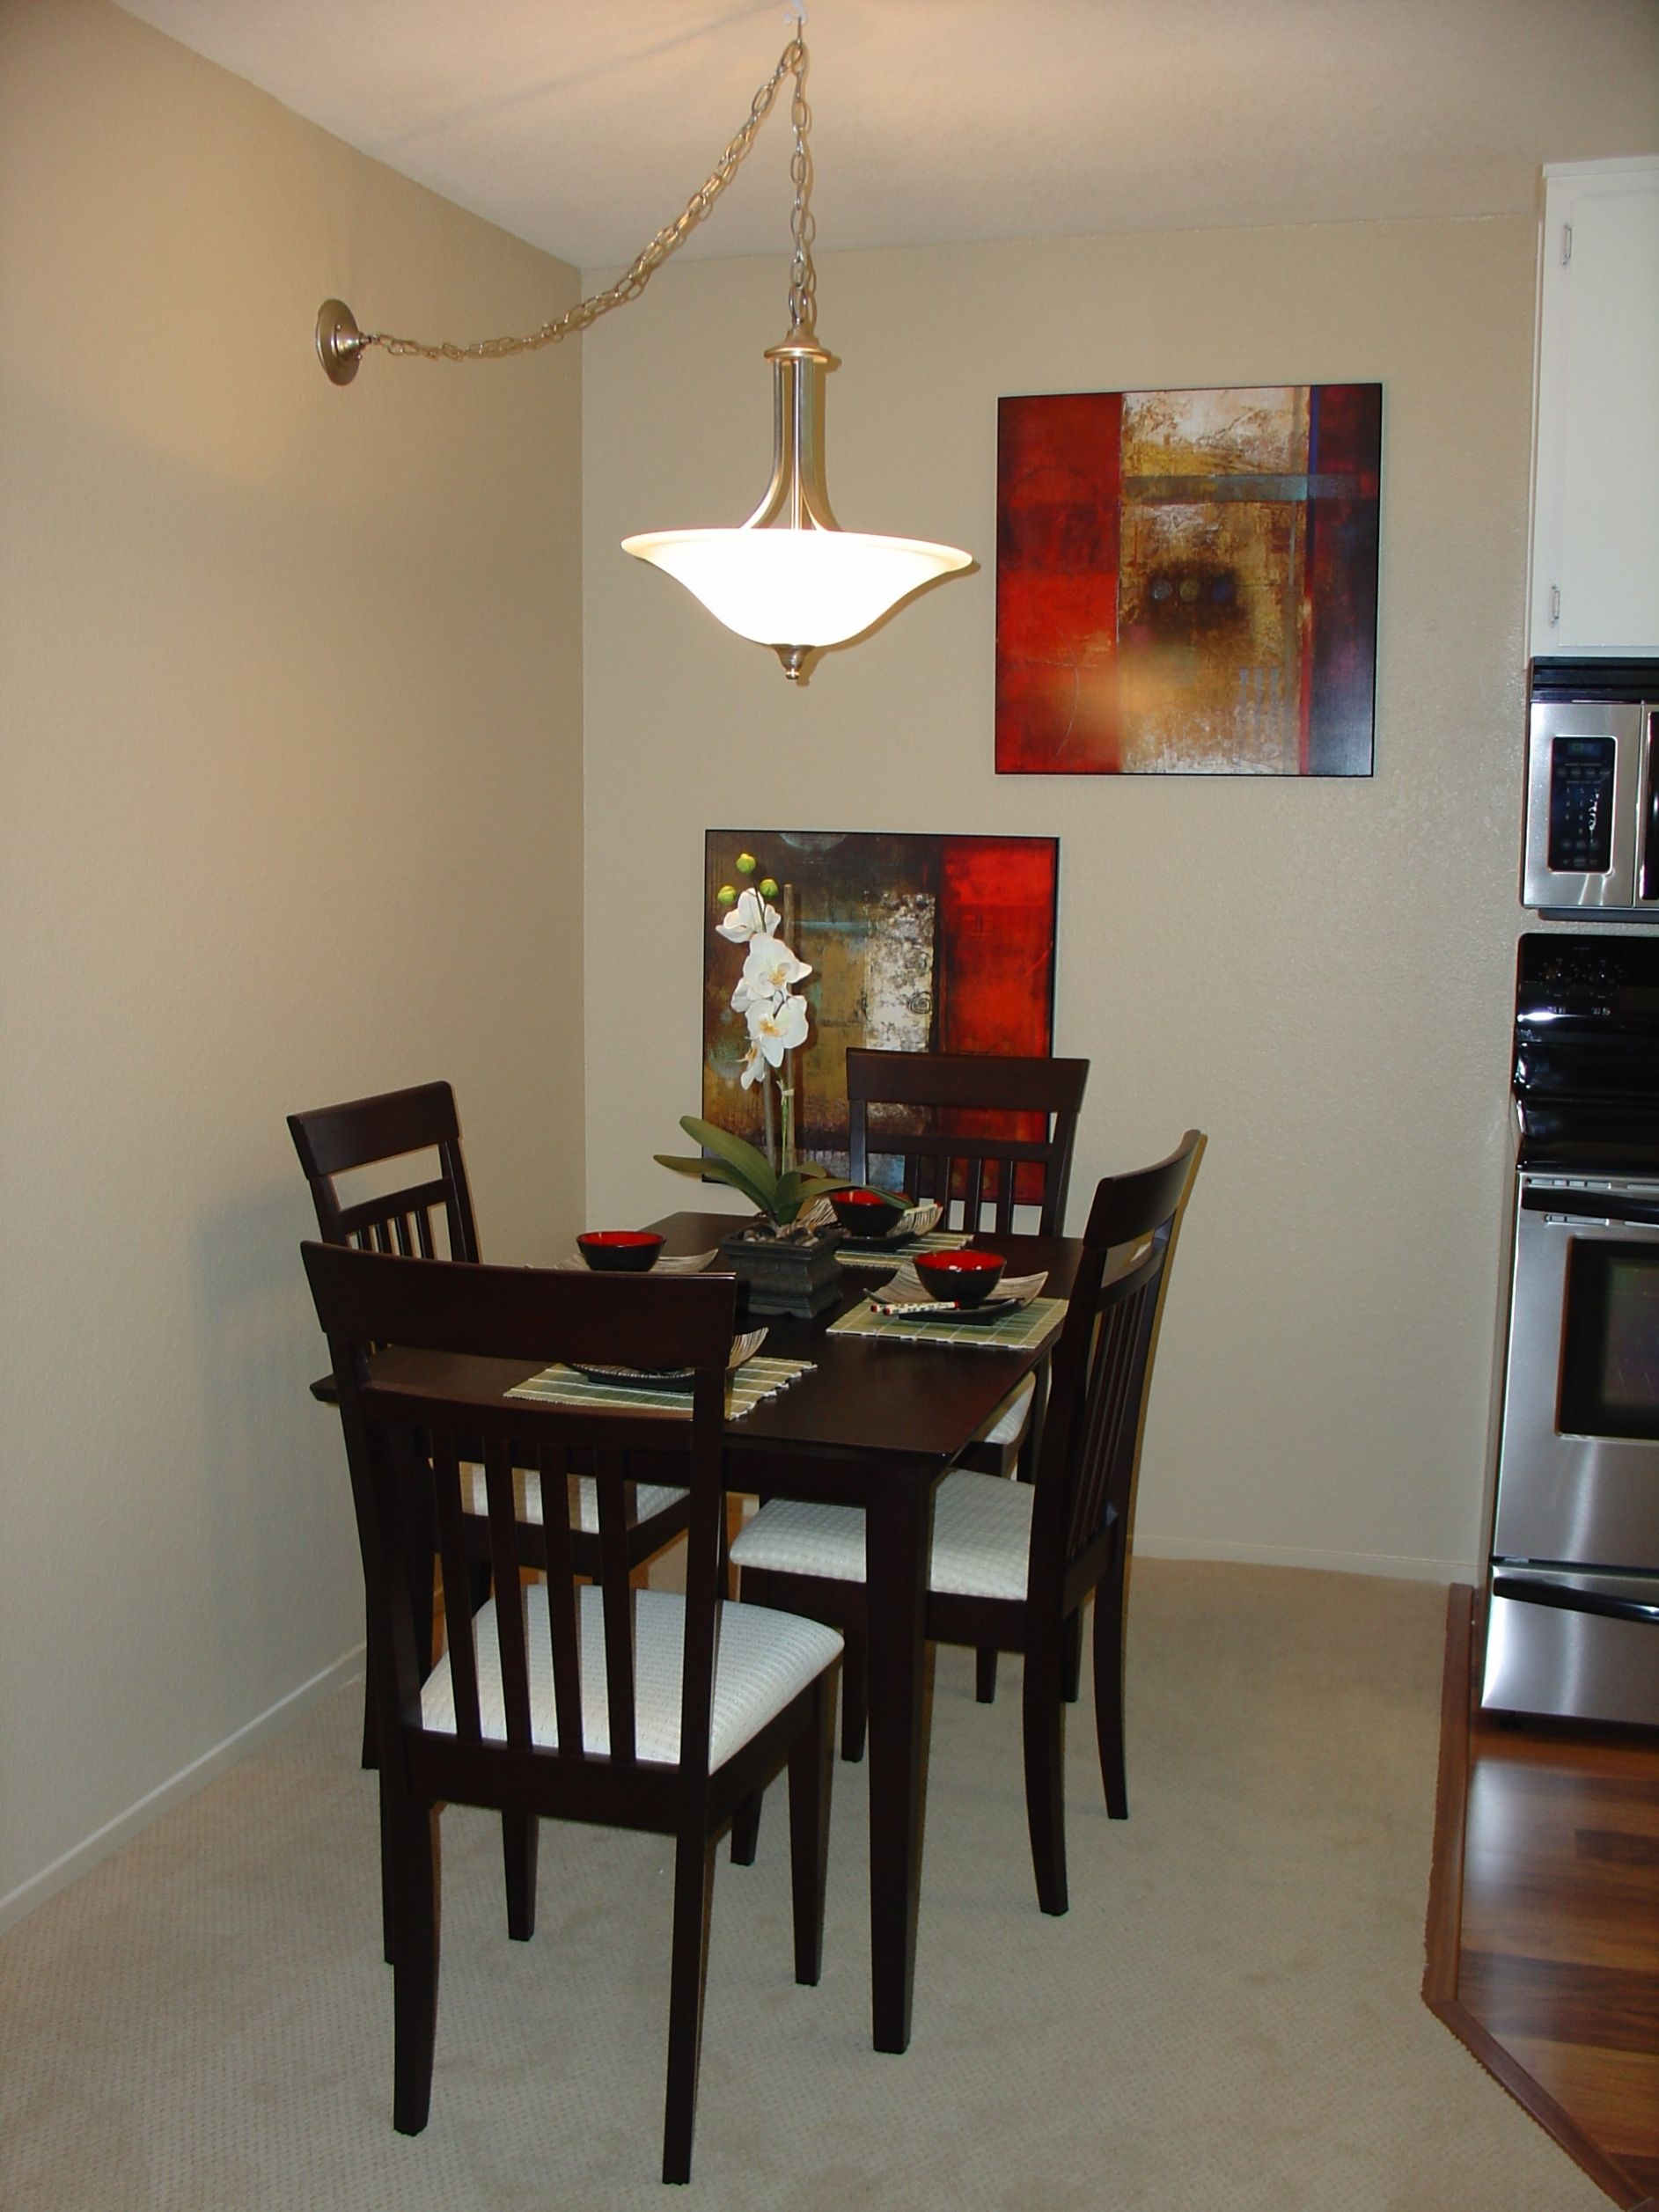 dining table design for small space - Karice - narrow dining room ideas